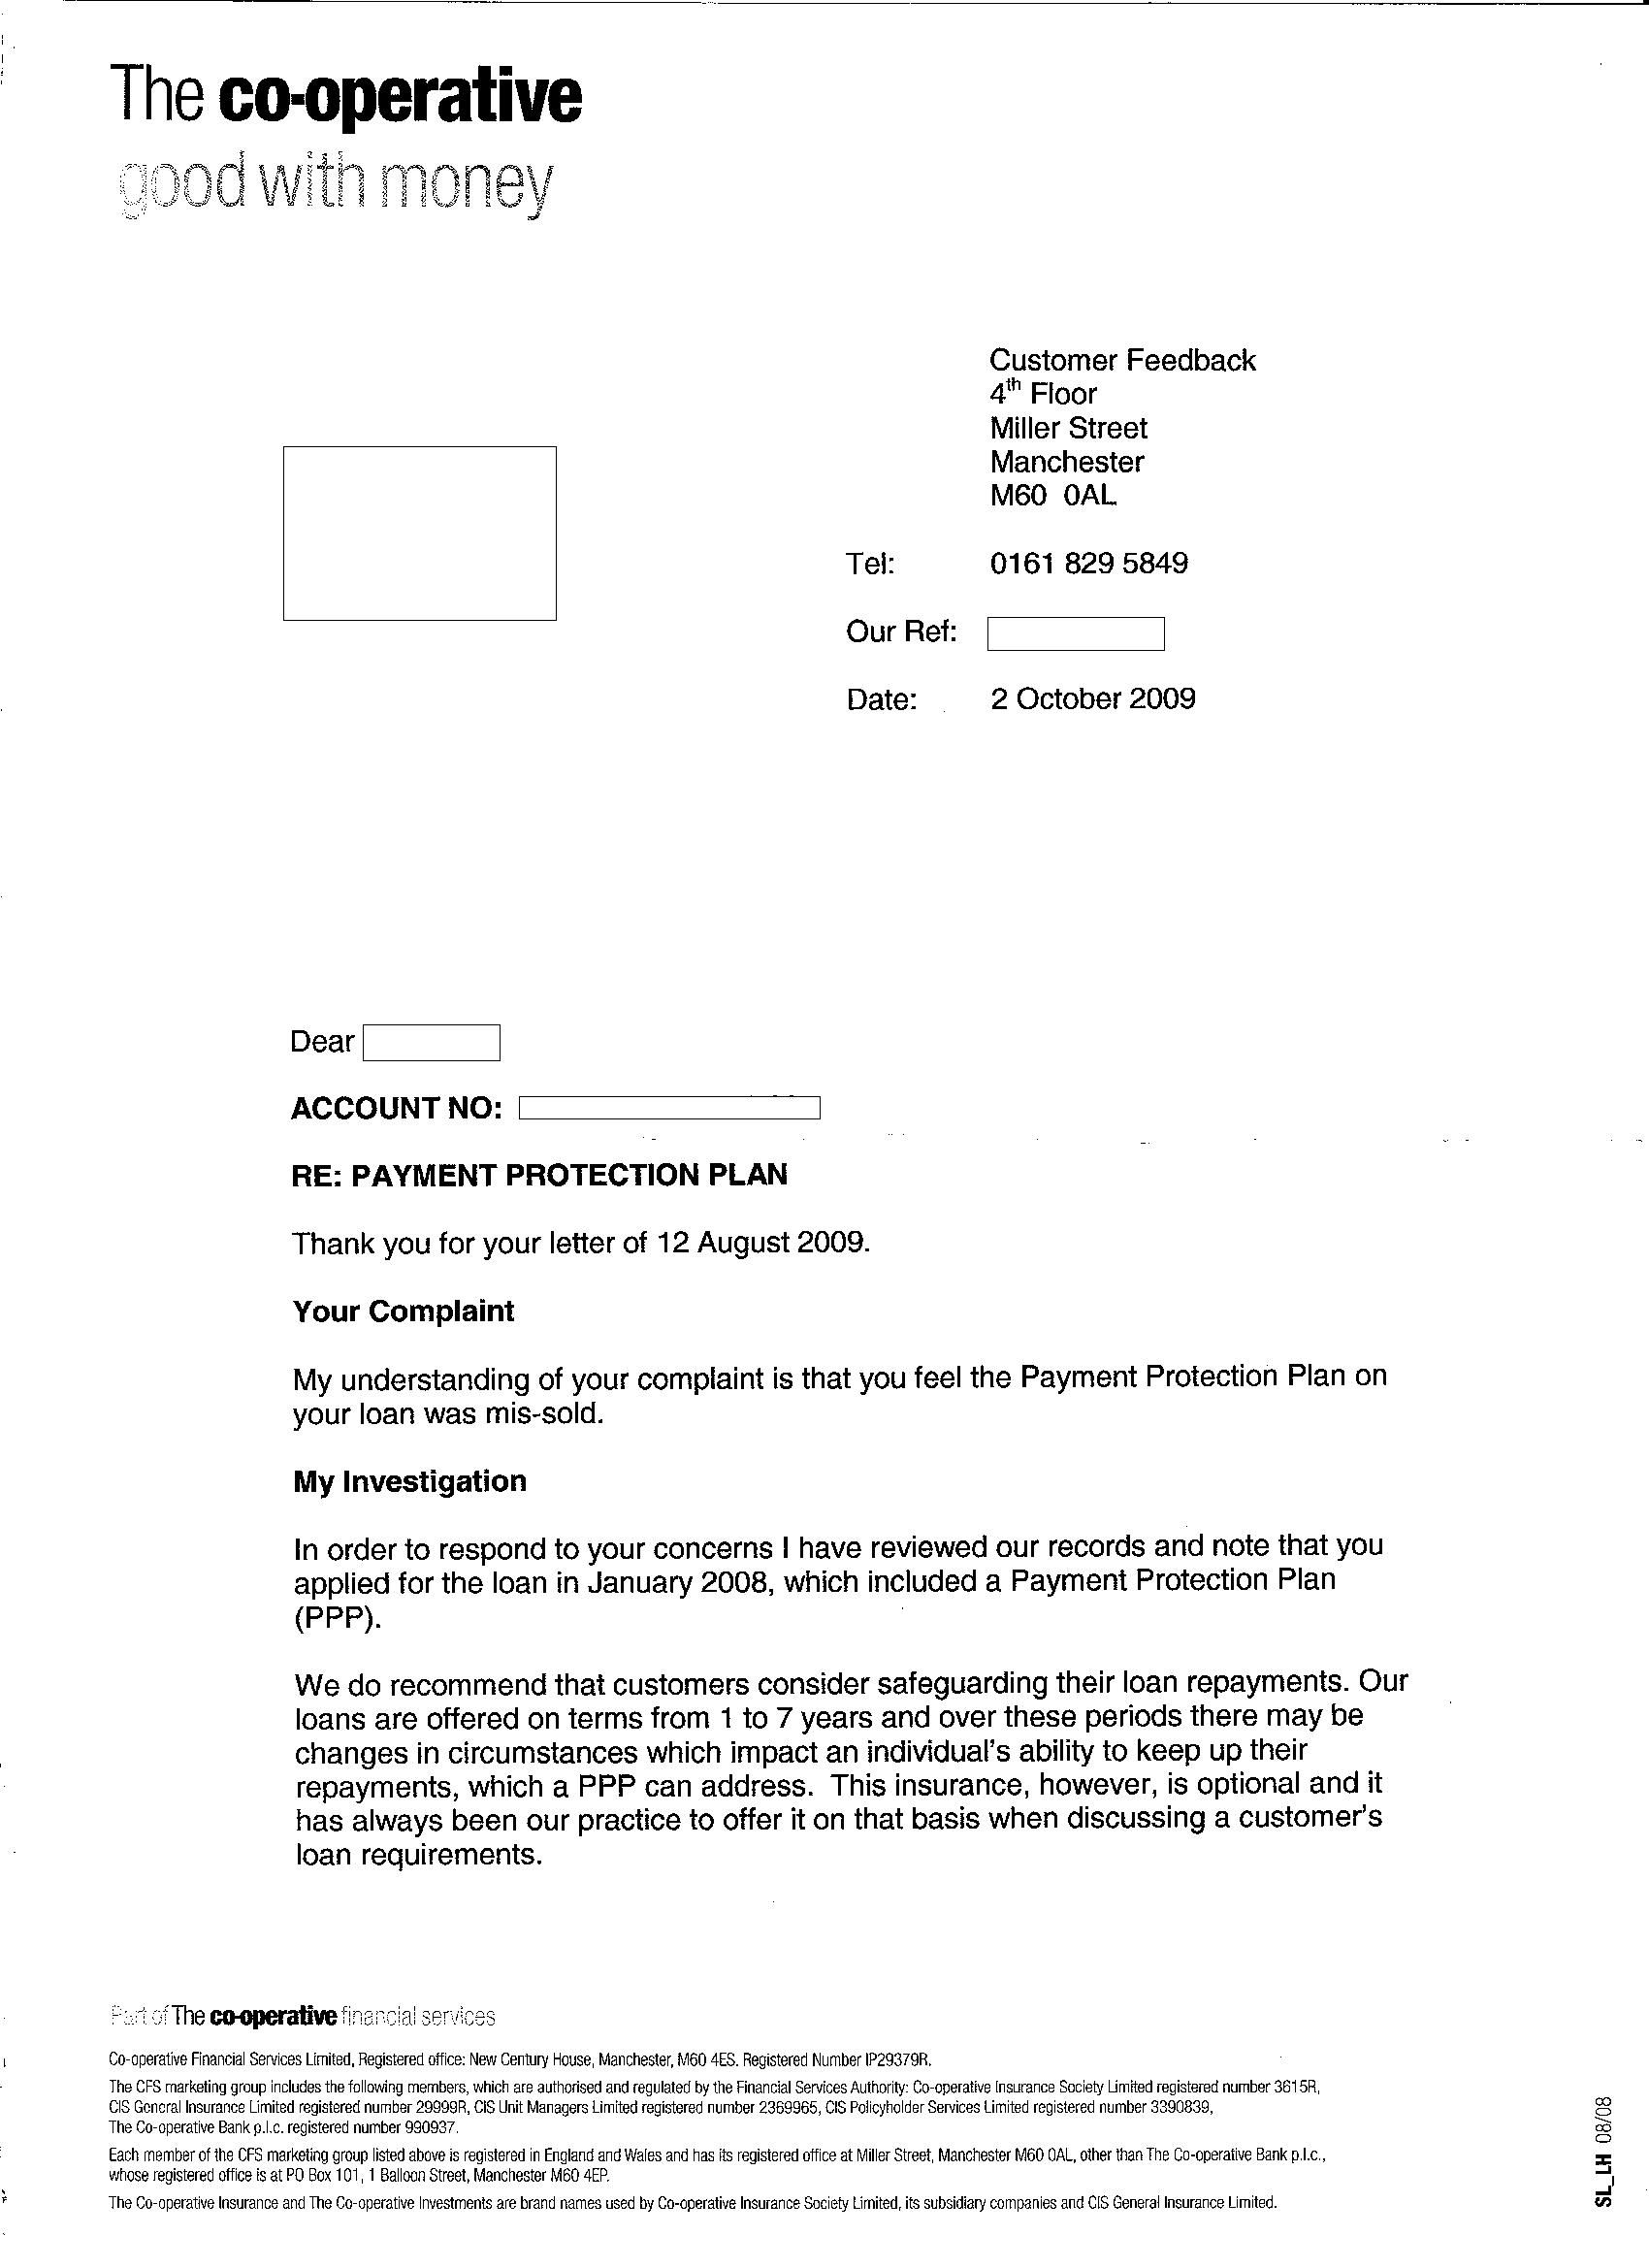 Ppi claim letter template back thousands for unfair payment ppi claim letter template back thousands for unfair payment clydesdale bank should claims home design idea pinterest payment protection insurance spiritdancerdesigns Image collections